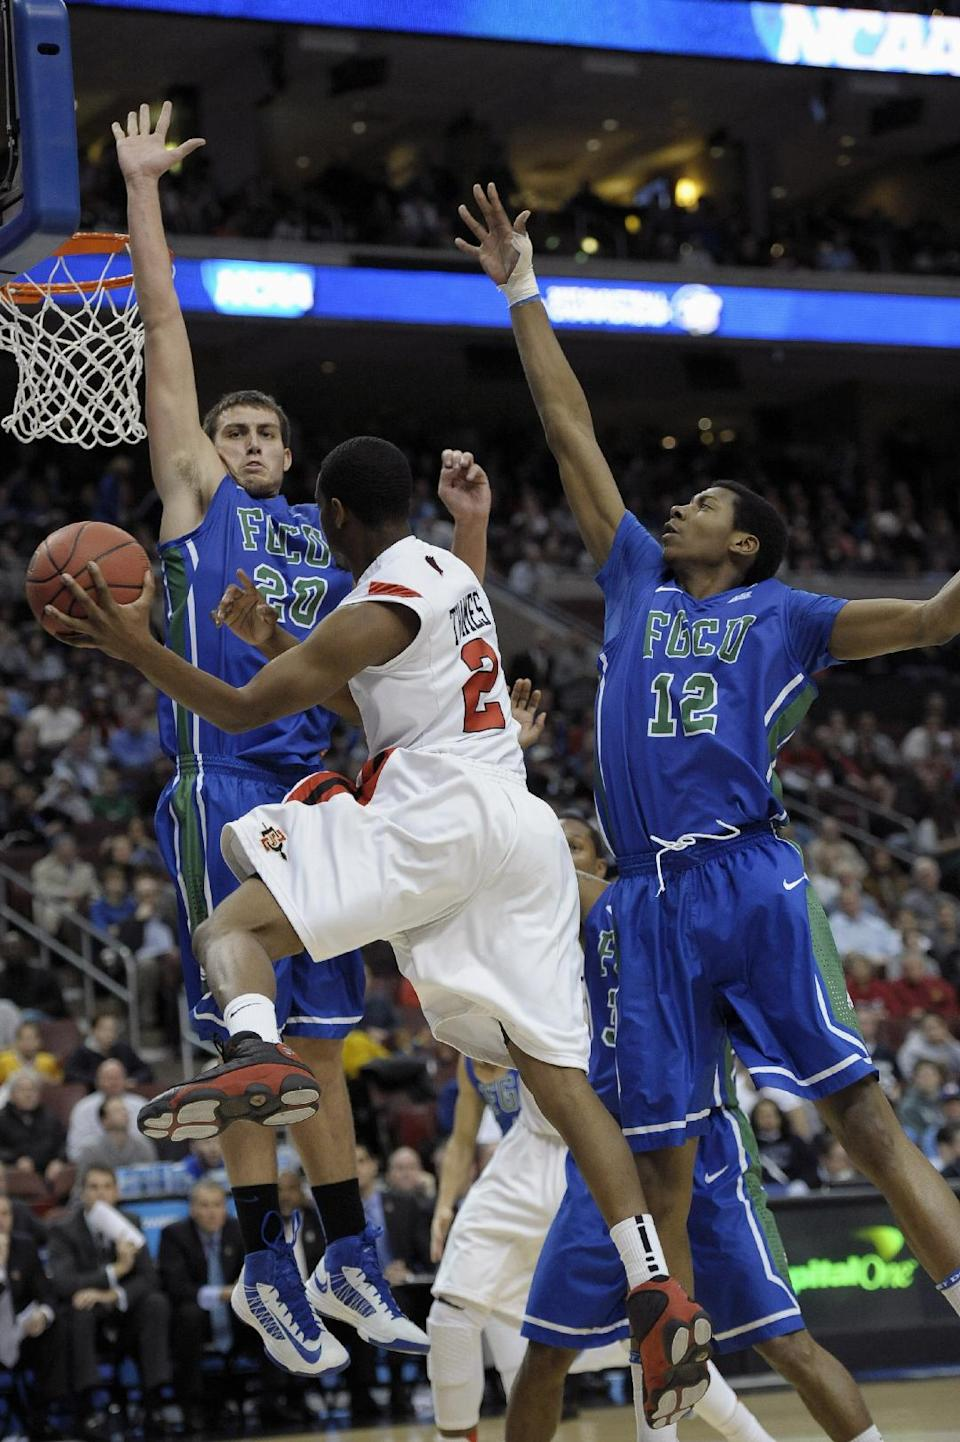 San Diego State's Xavier Thames (2) tries to get a past around Florida Gulf Coast's Chase Fieler (20) and Eric McKnight (12) during the first half of a third-round game of the NCAA college basketball tournament, Sunday, March 24, 2013, in Philadelphia. (AP Photo/Michael Perez)